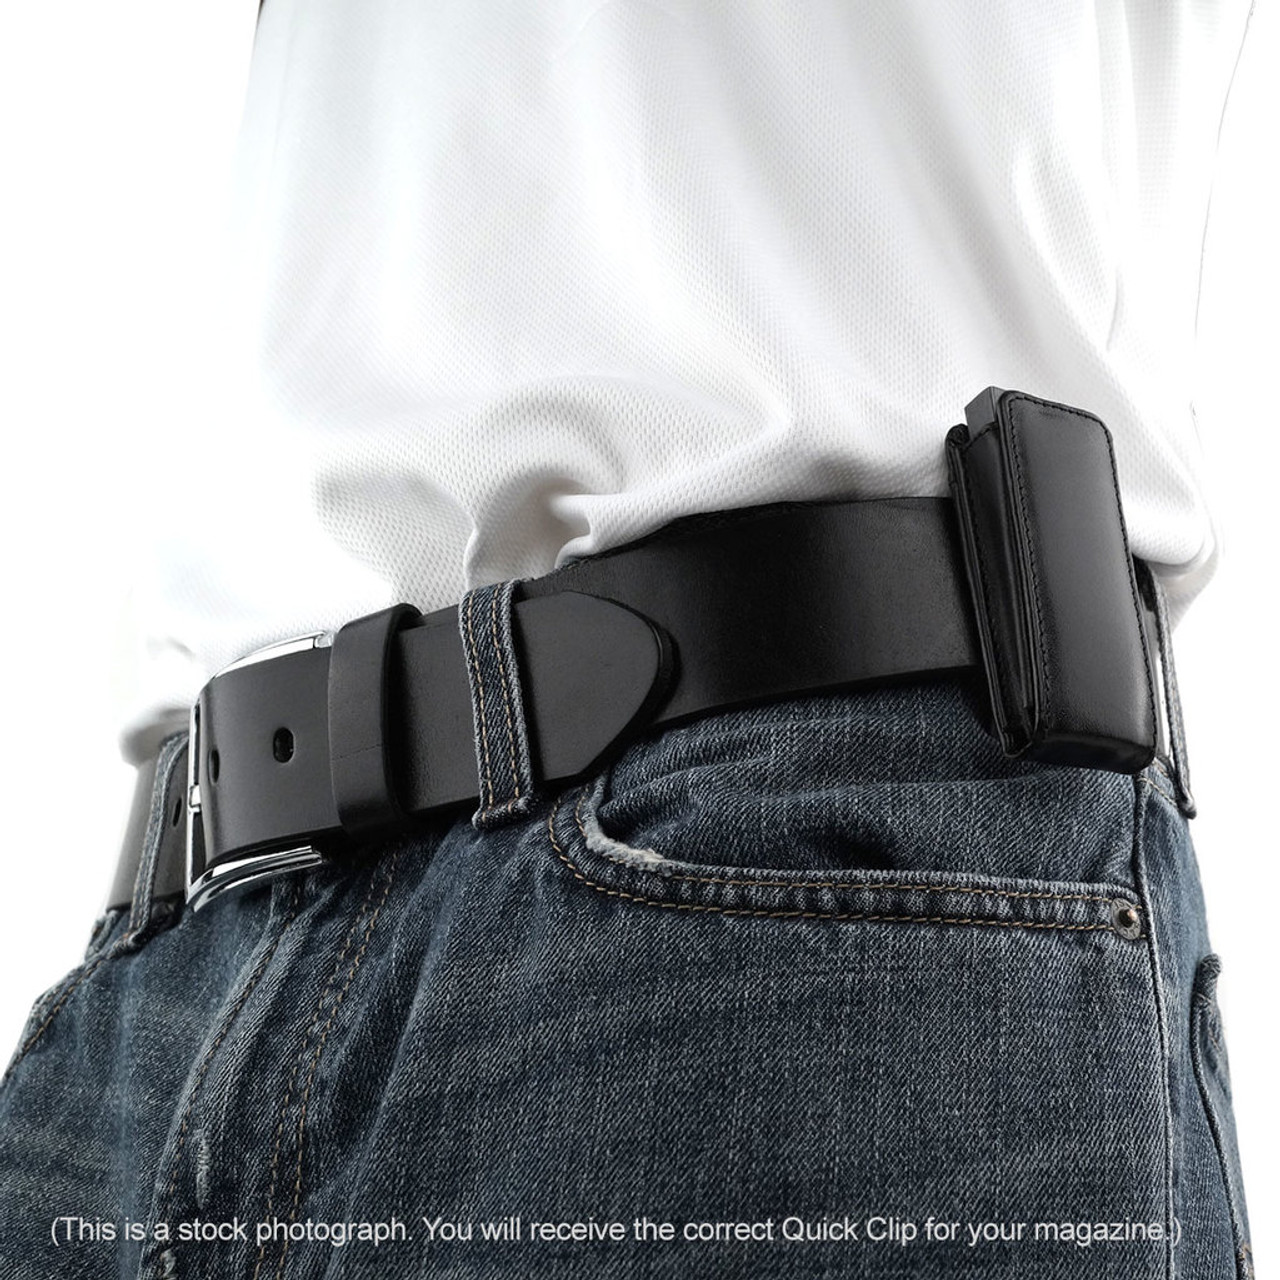 Springfield XDS 40 Quick Clip Magazine Holster